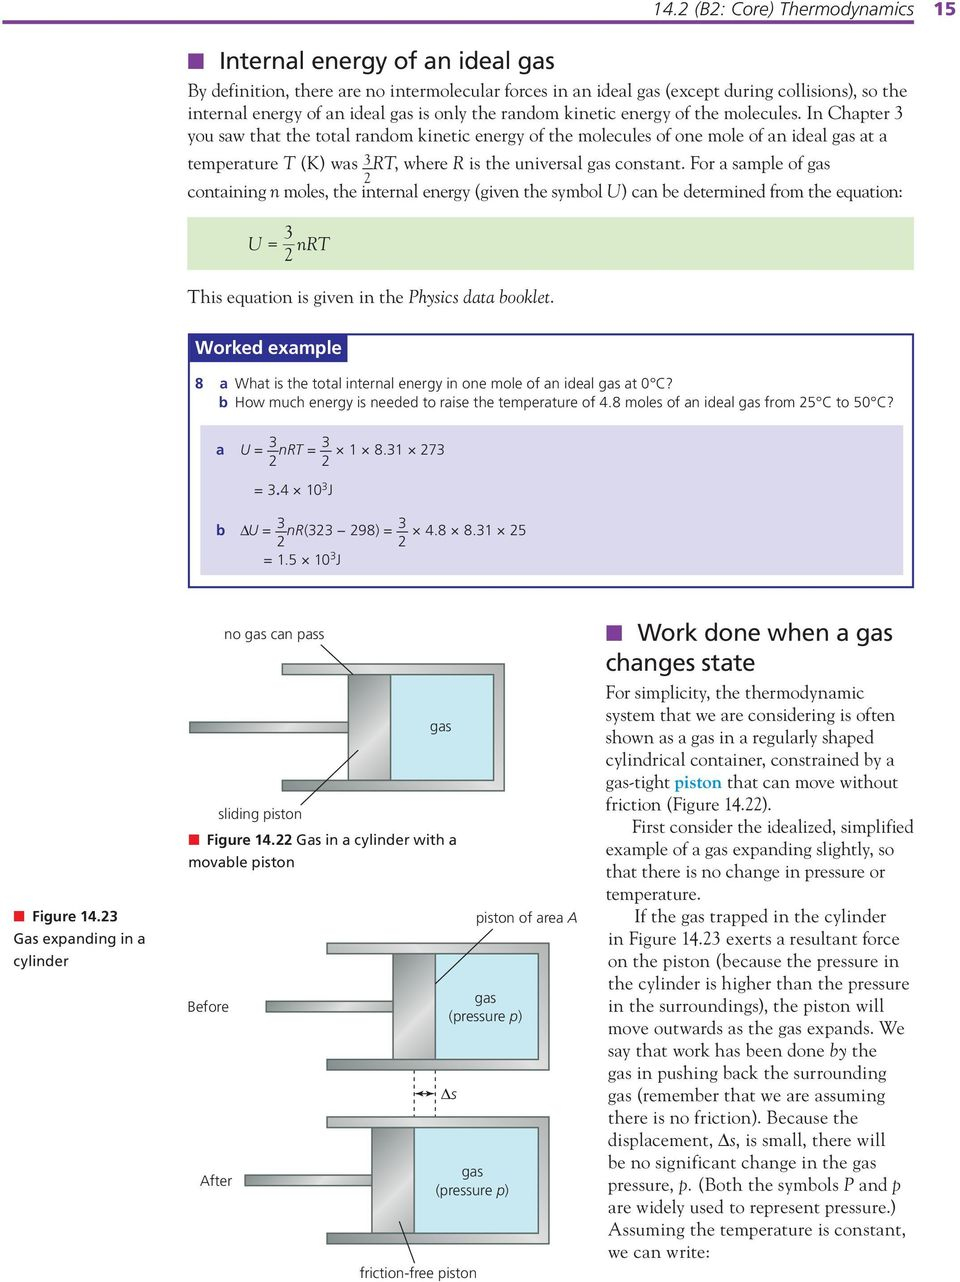 In Chapter 3 you saw that the total random kinetic energy of the molecules of one mole of an ideal gas at a temperature T (K) was 3 RT, where R is the universal gas constant.